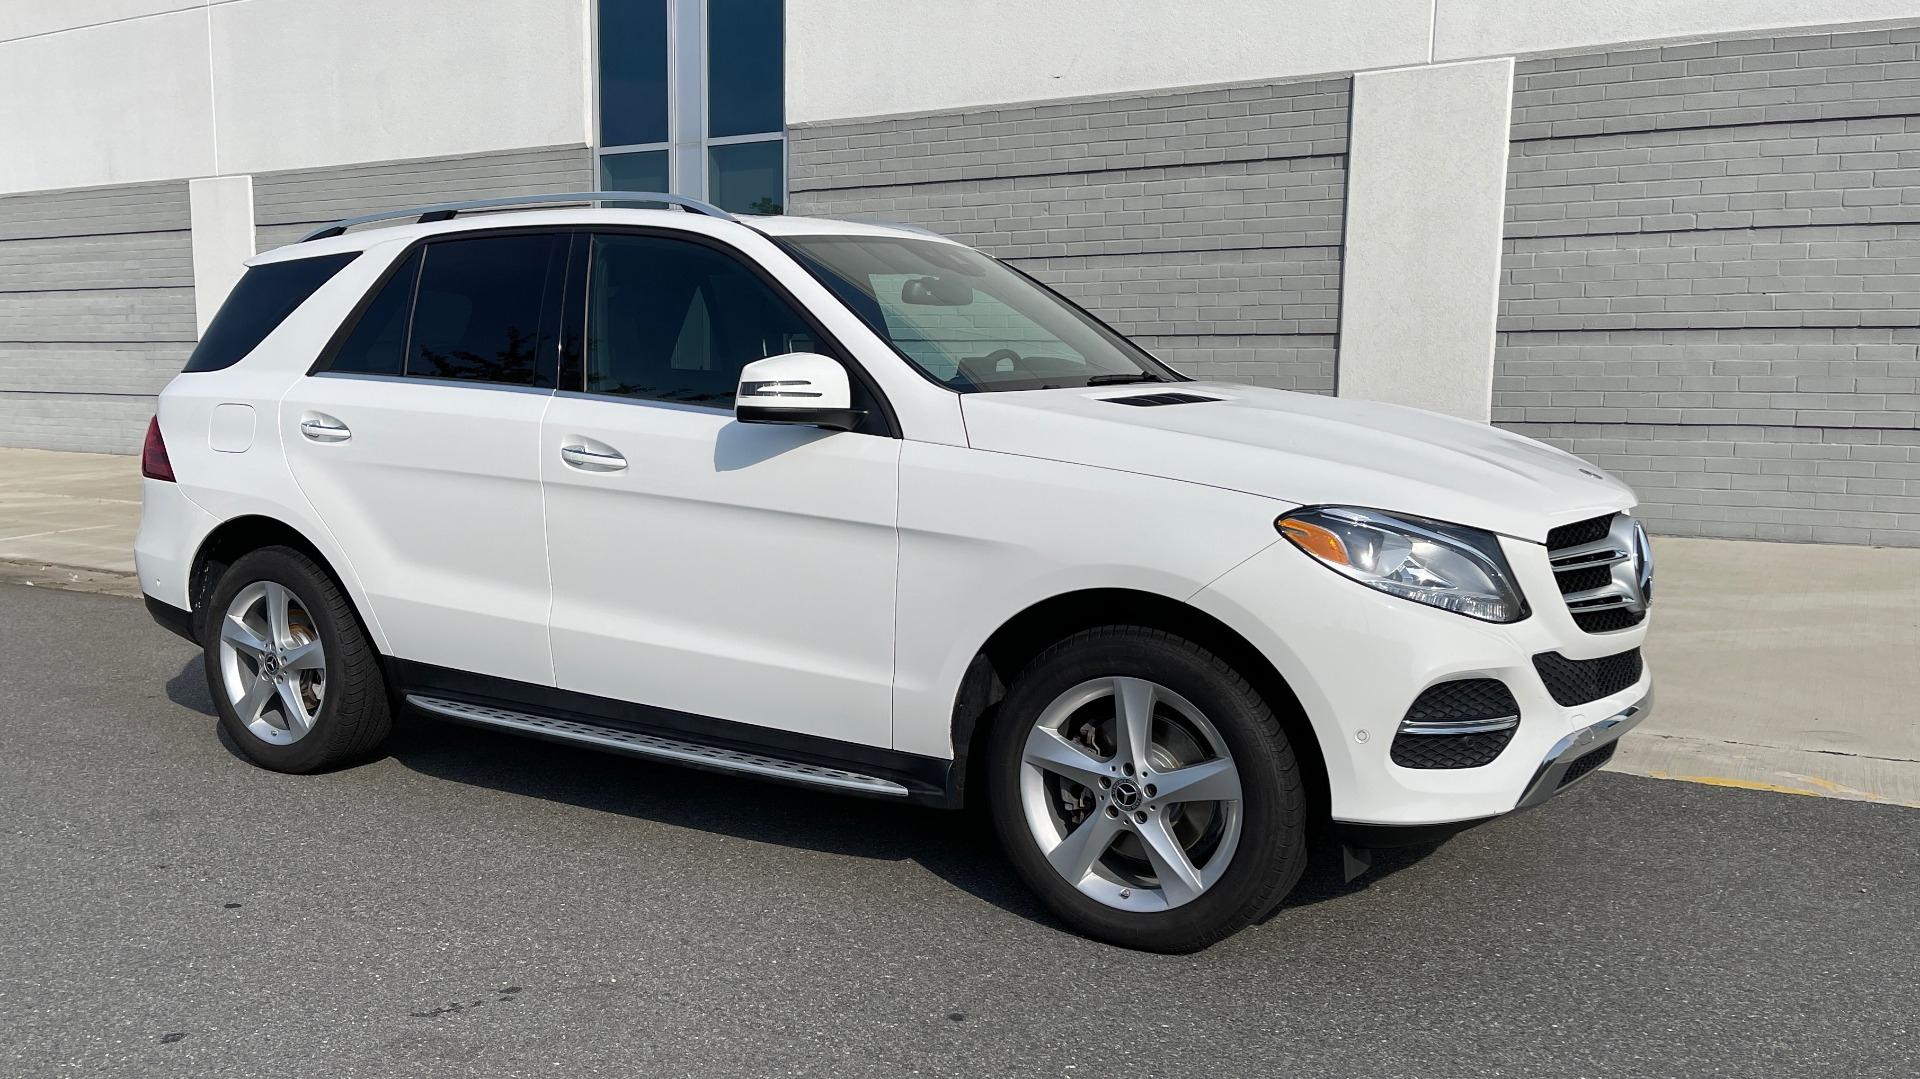 Used 2018 Mercedes-Benz GLE 350 4MATIC PREMIUM / NAV / SUNROOF / HTD STS / TRAILER HITCH / REARVIEW for sale $36,295 at Formula Imports in Charlotte NC 28227 6